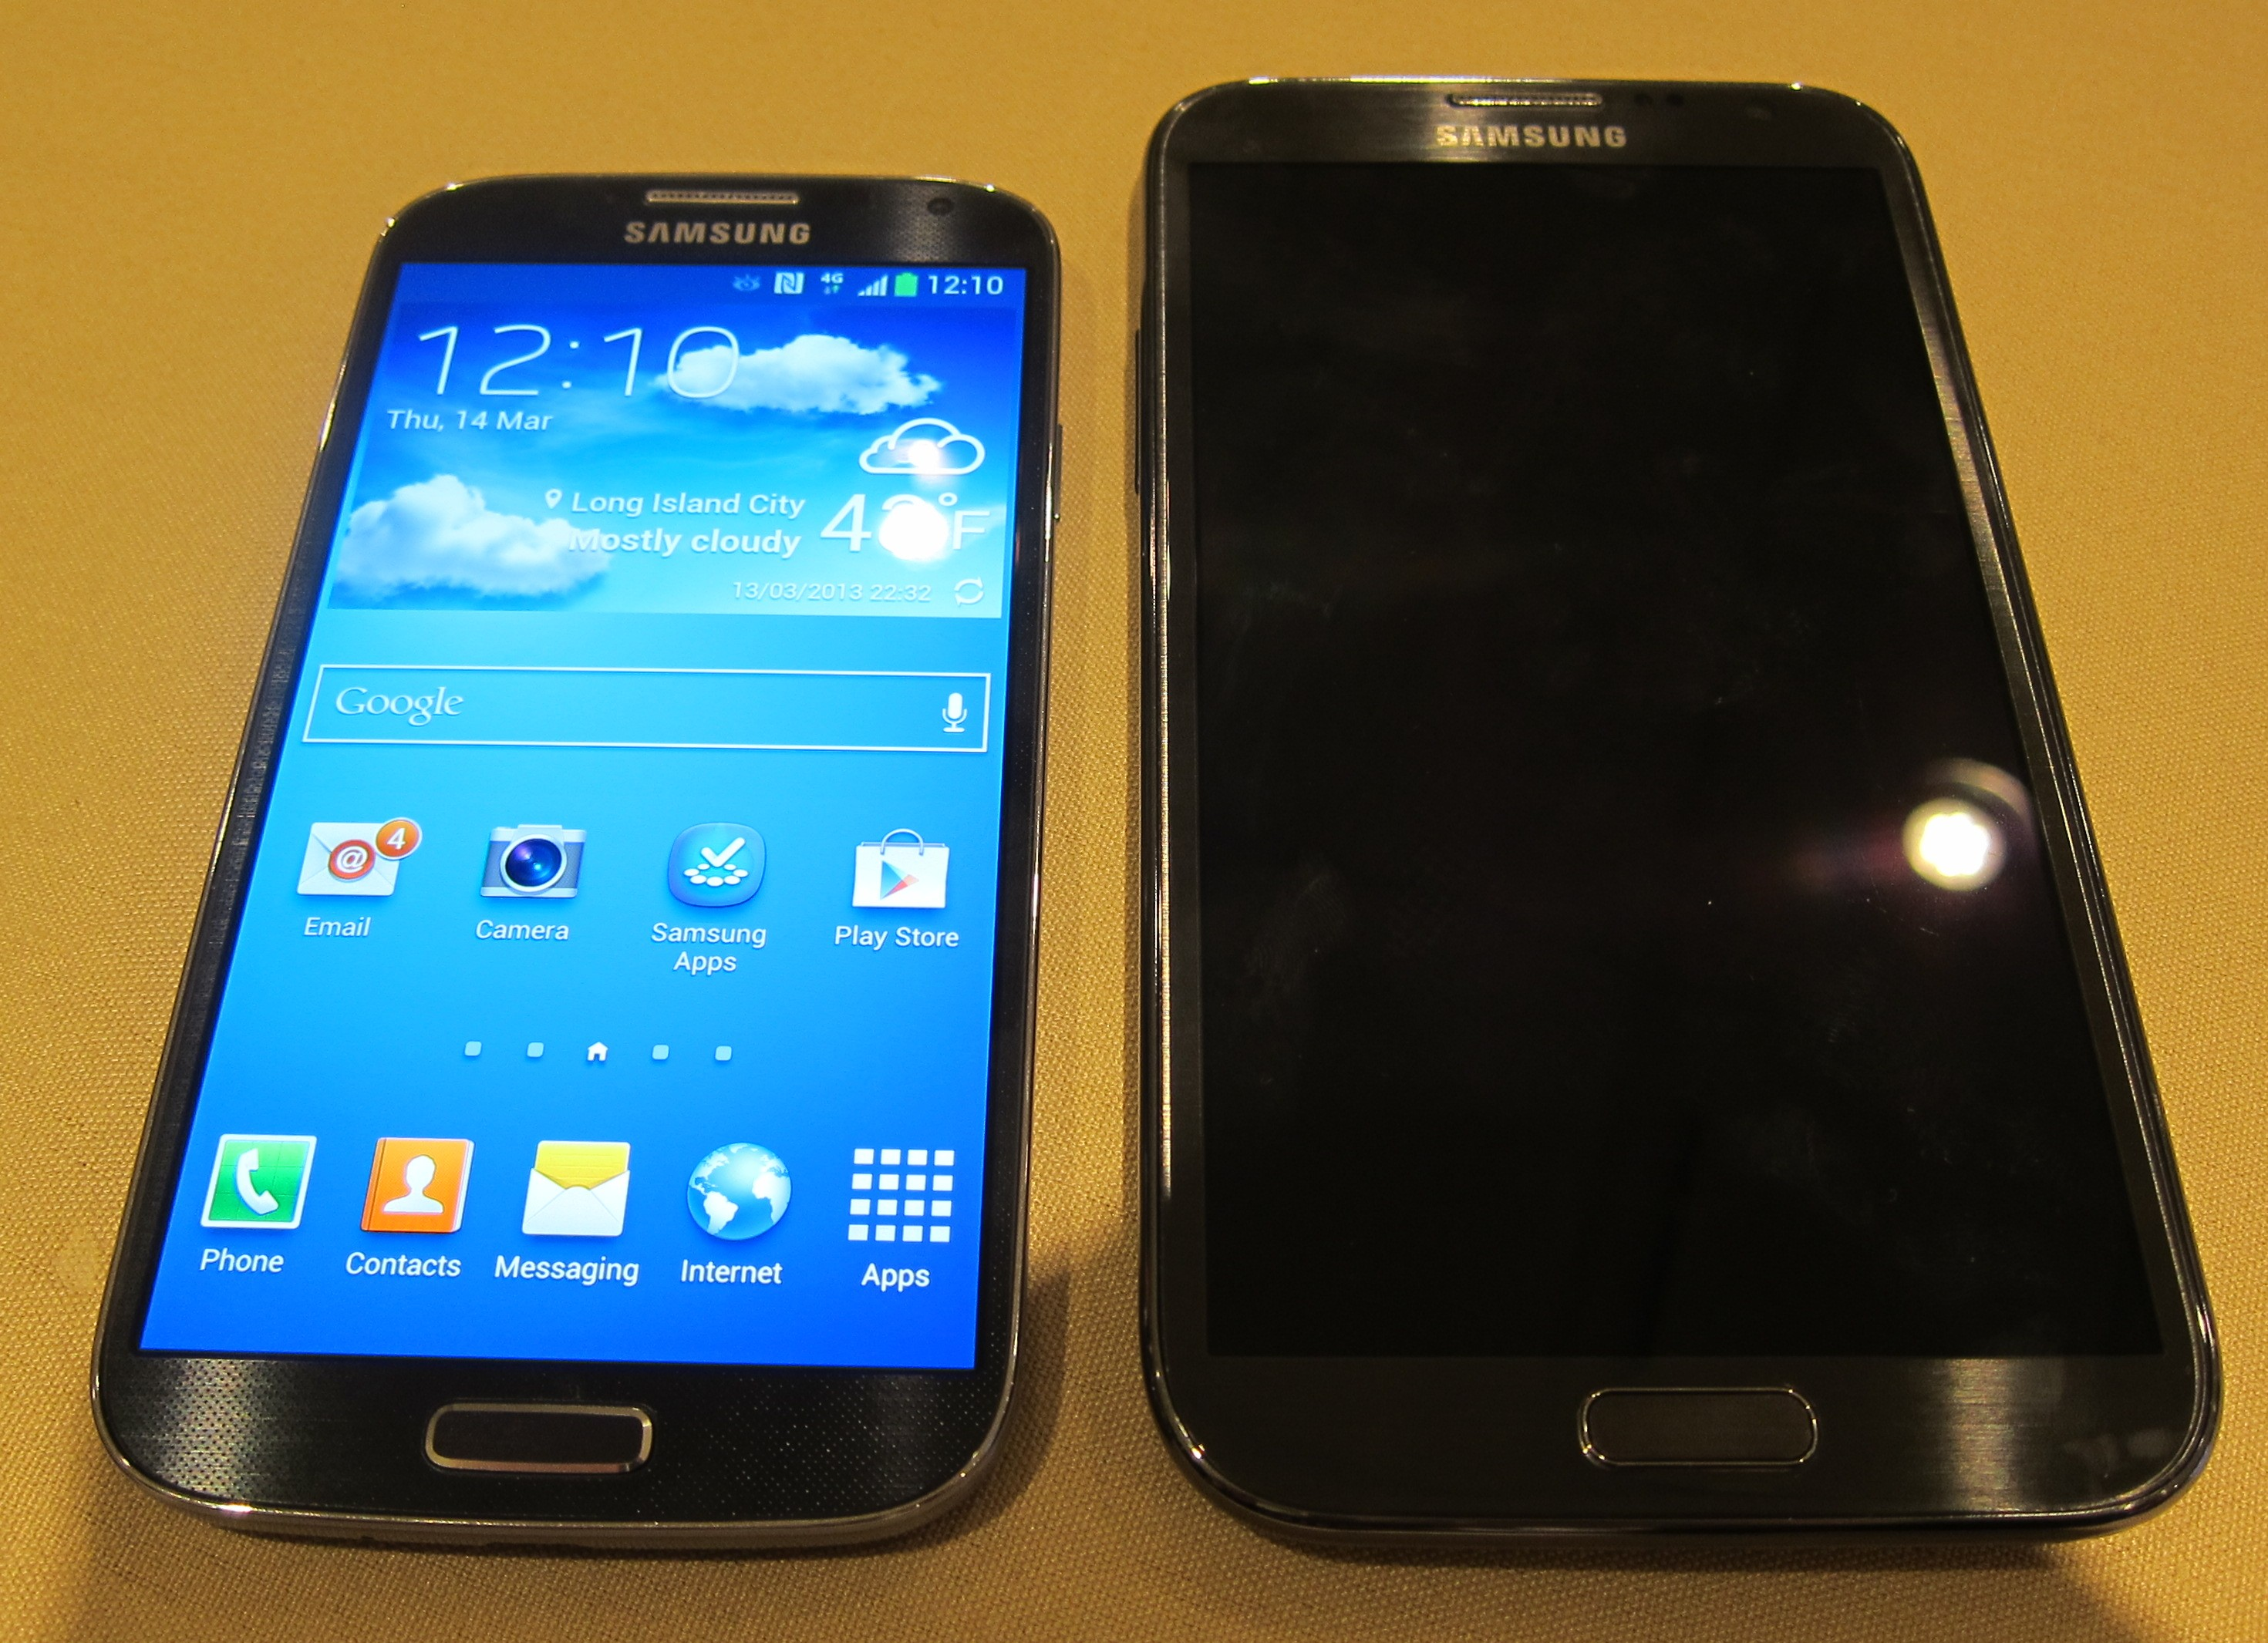 Galaxy S 4 vs Galaxy Note 2